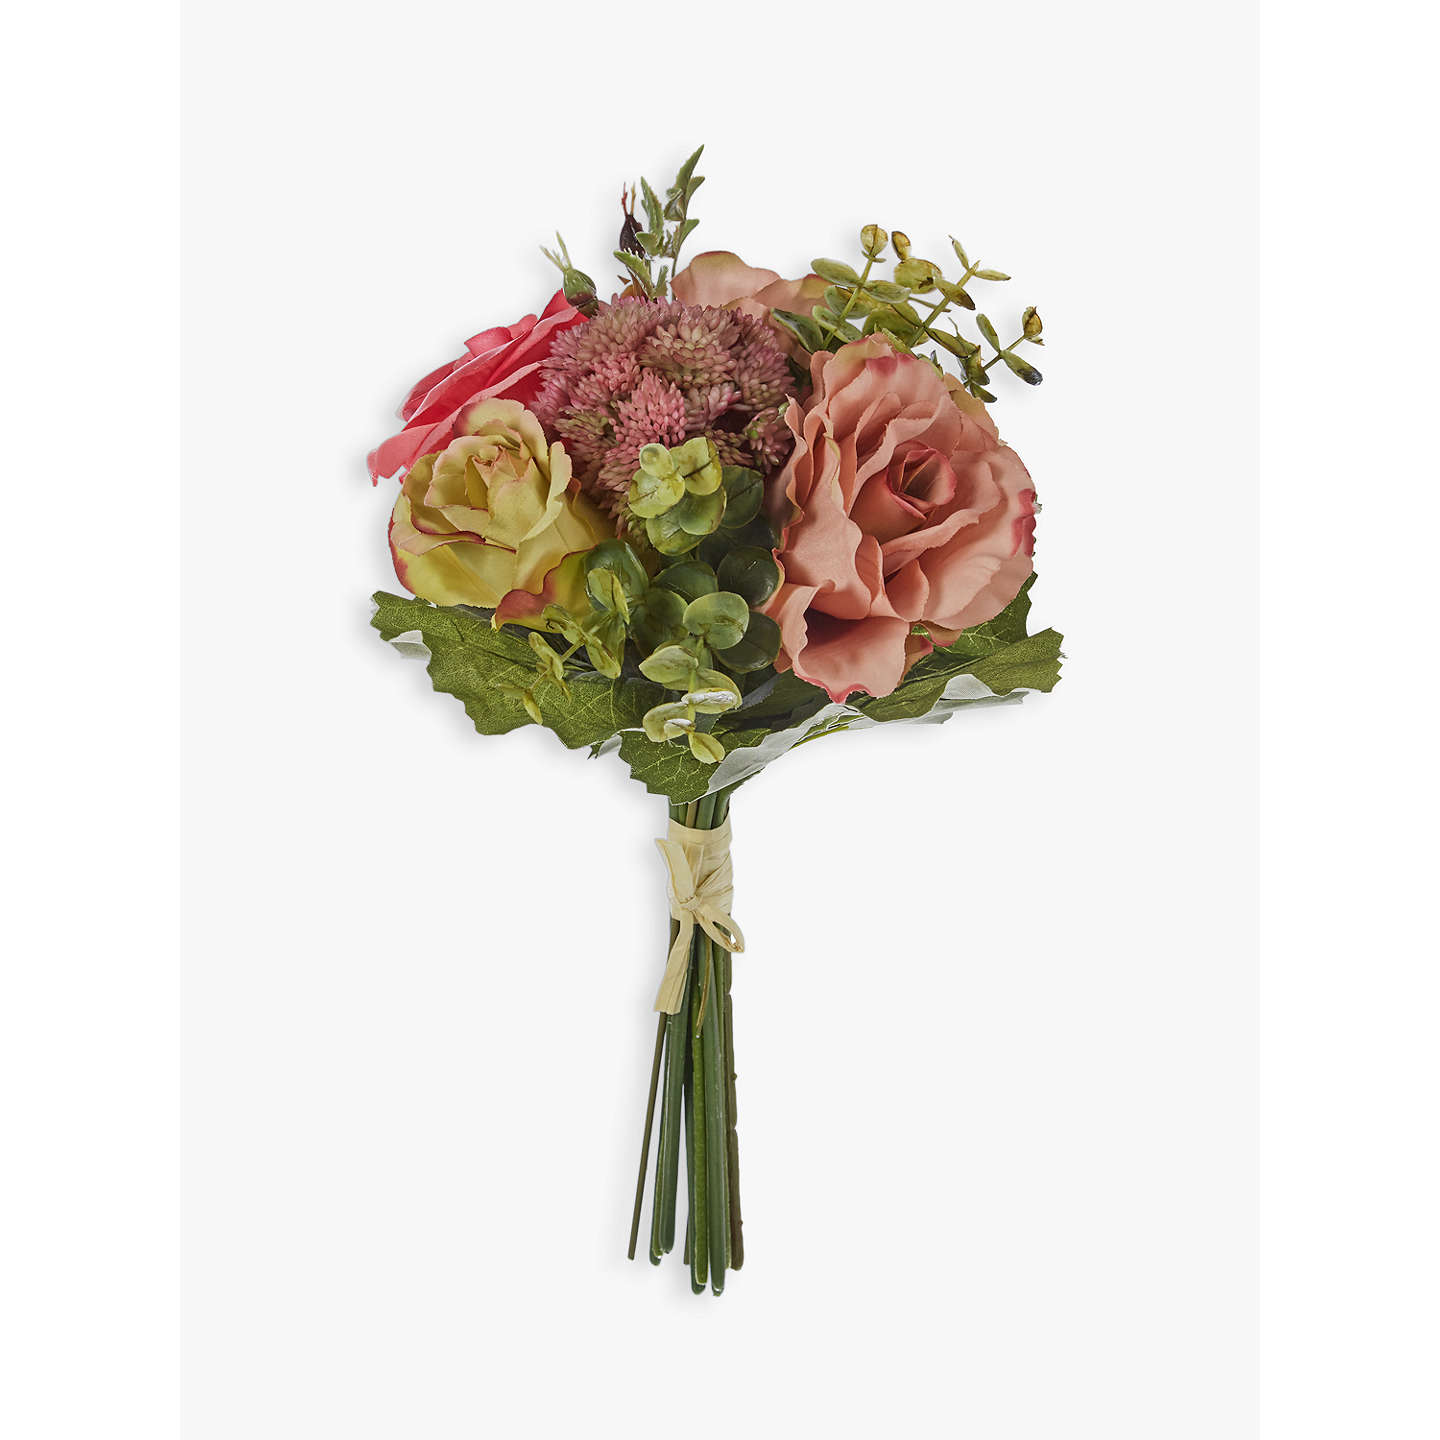 John lewis artificial rose eucalyptus flower bundle at john lewis buyjohn lewis artificial rose eucalyptus flower bundle online at johnlewis mightylinksfo